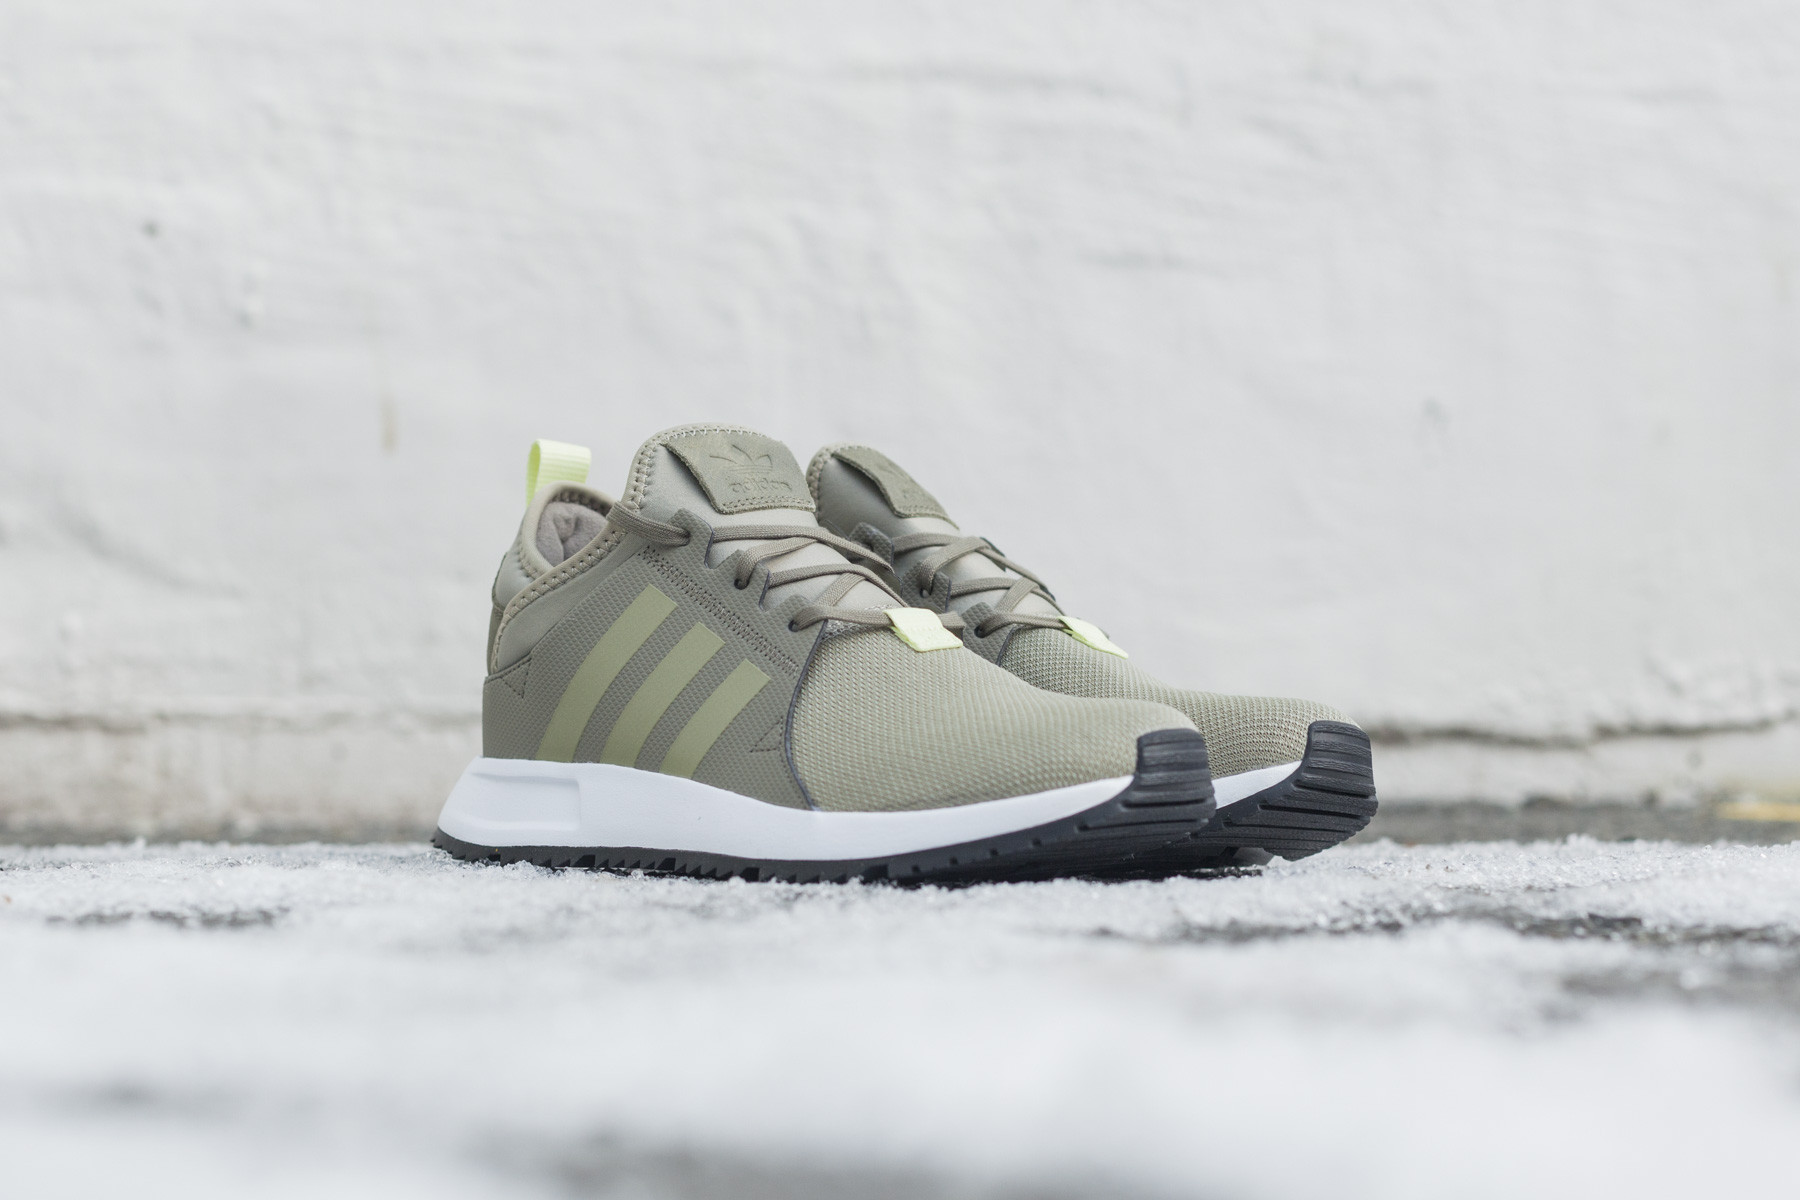 adidas shoes sale, Adidas originals sko x plr sneakerboot